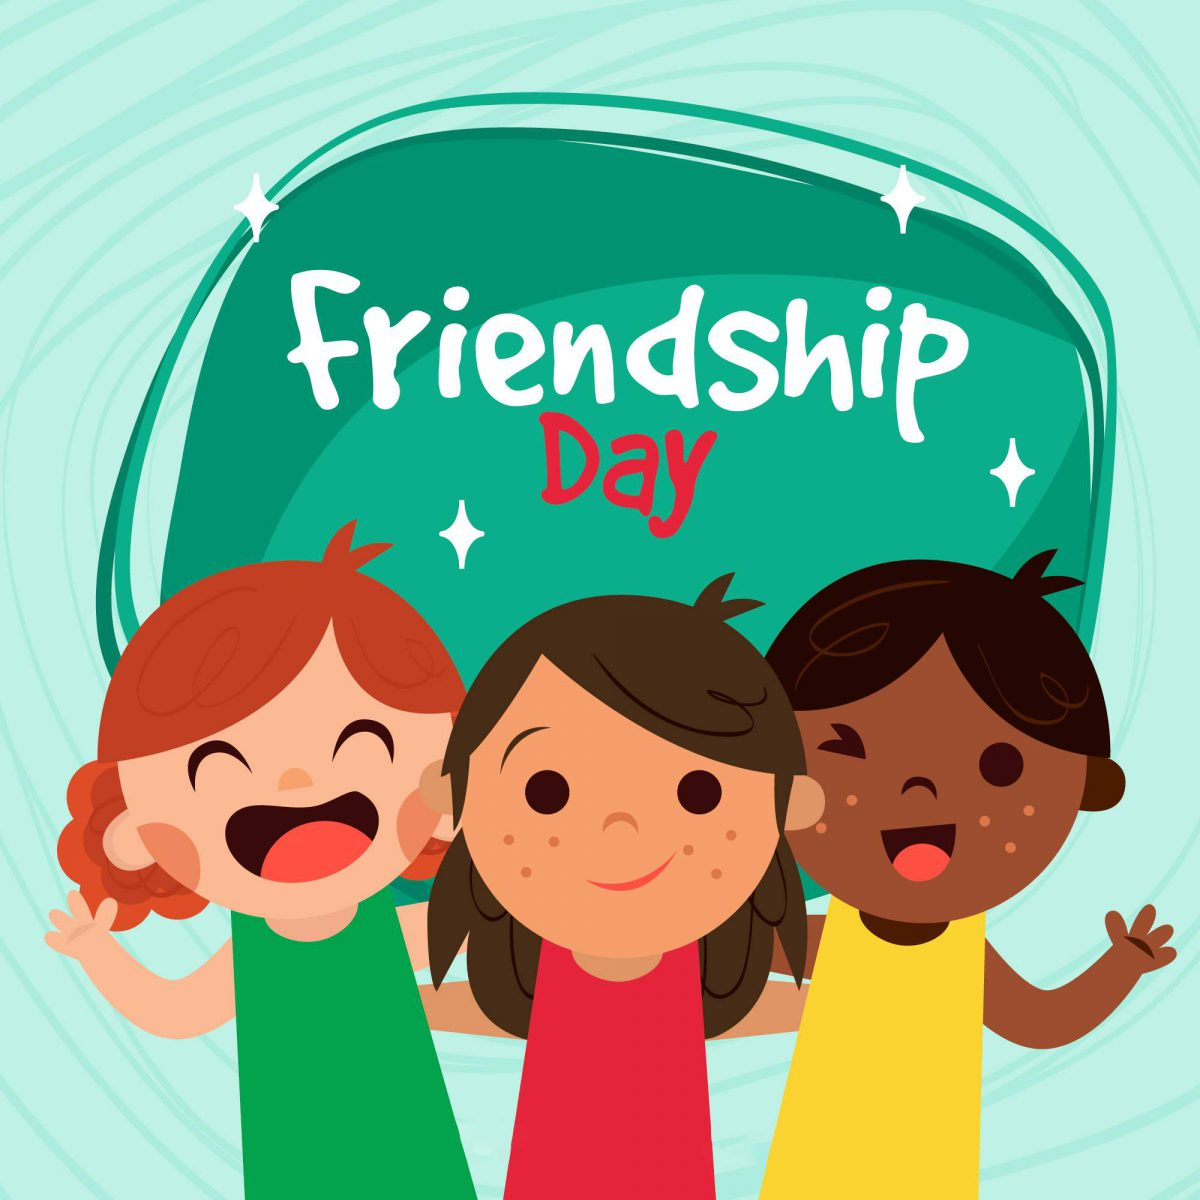 Friendship-1200x1200.jpg